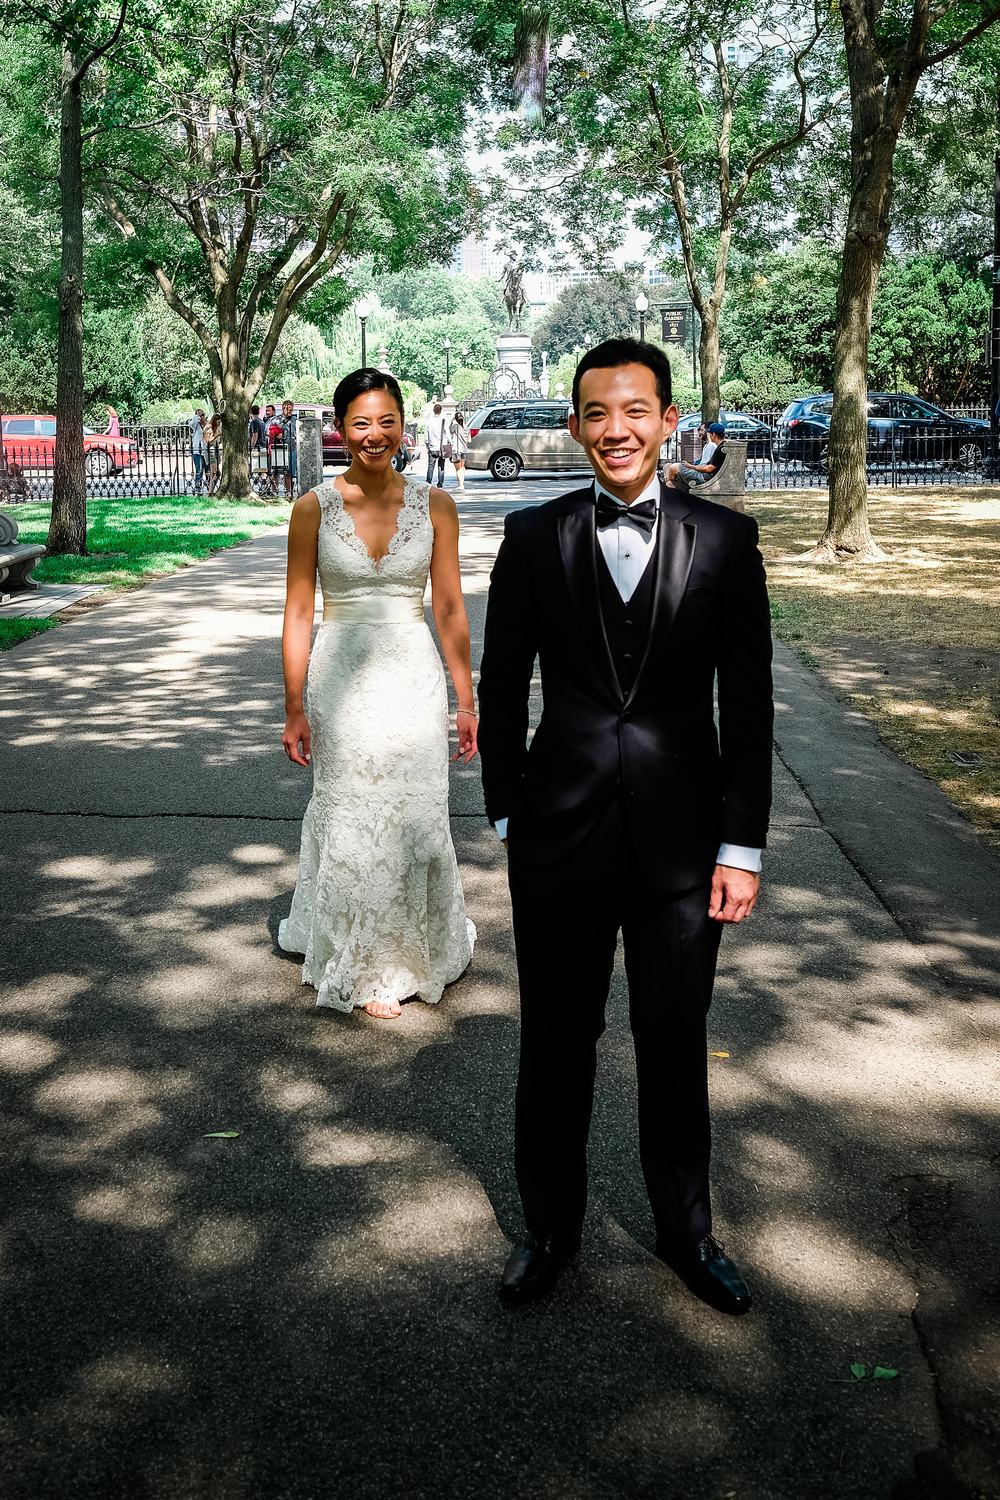 boston wedding photographer christian pleva